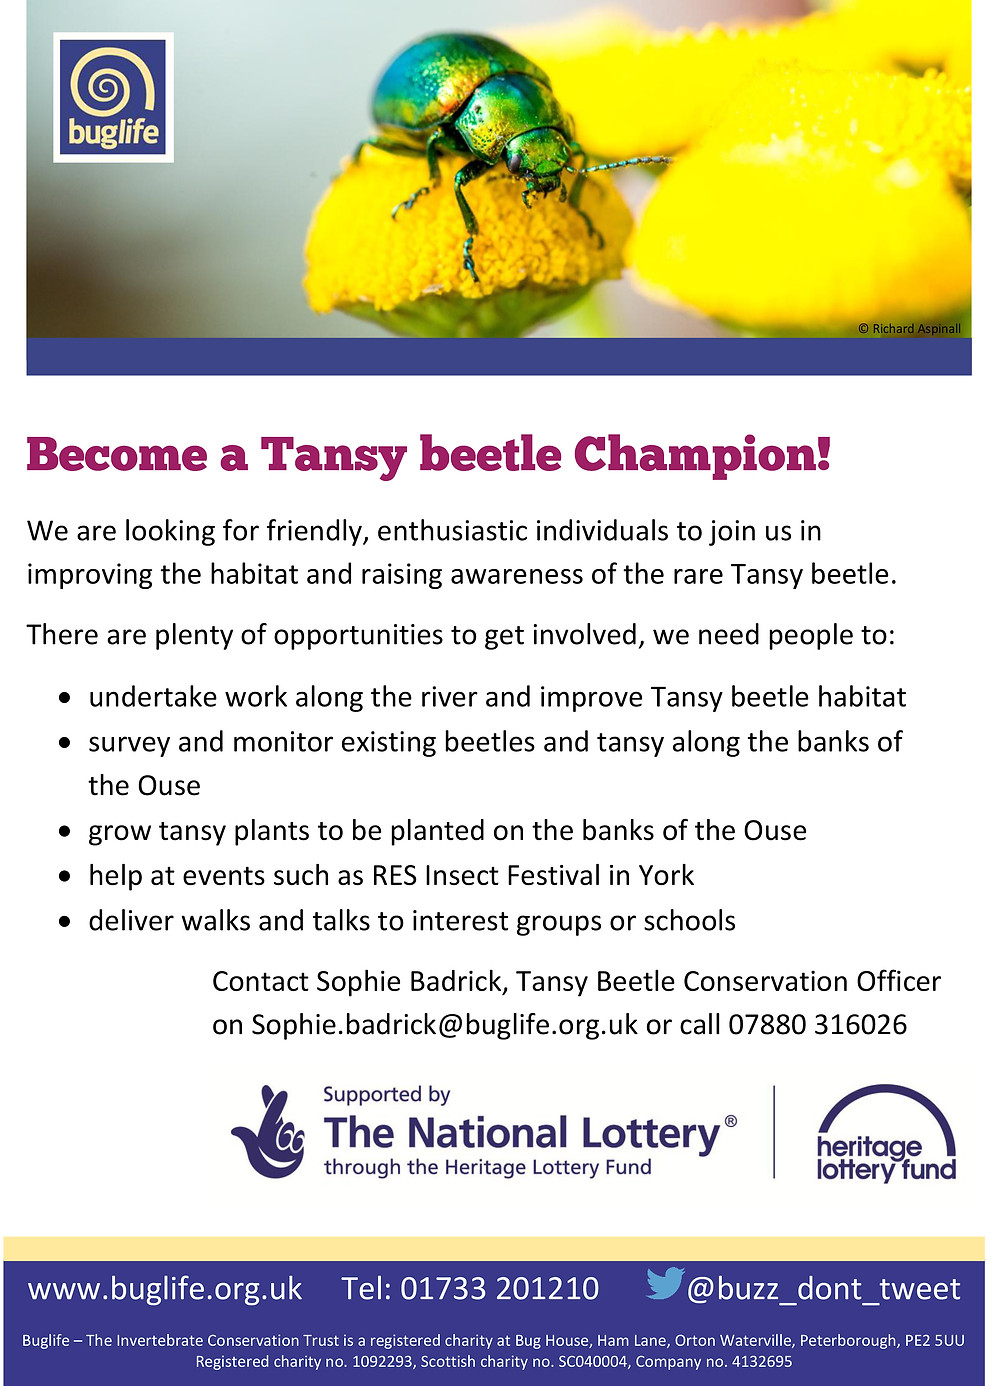 150611 Tansy beetle Champions poster.jpg